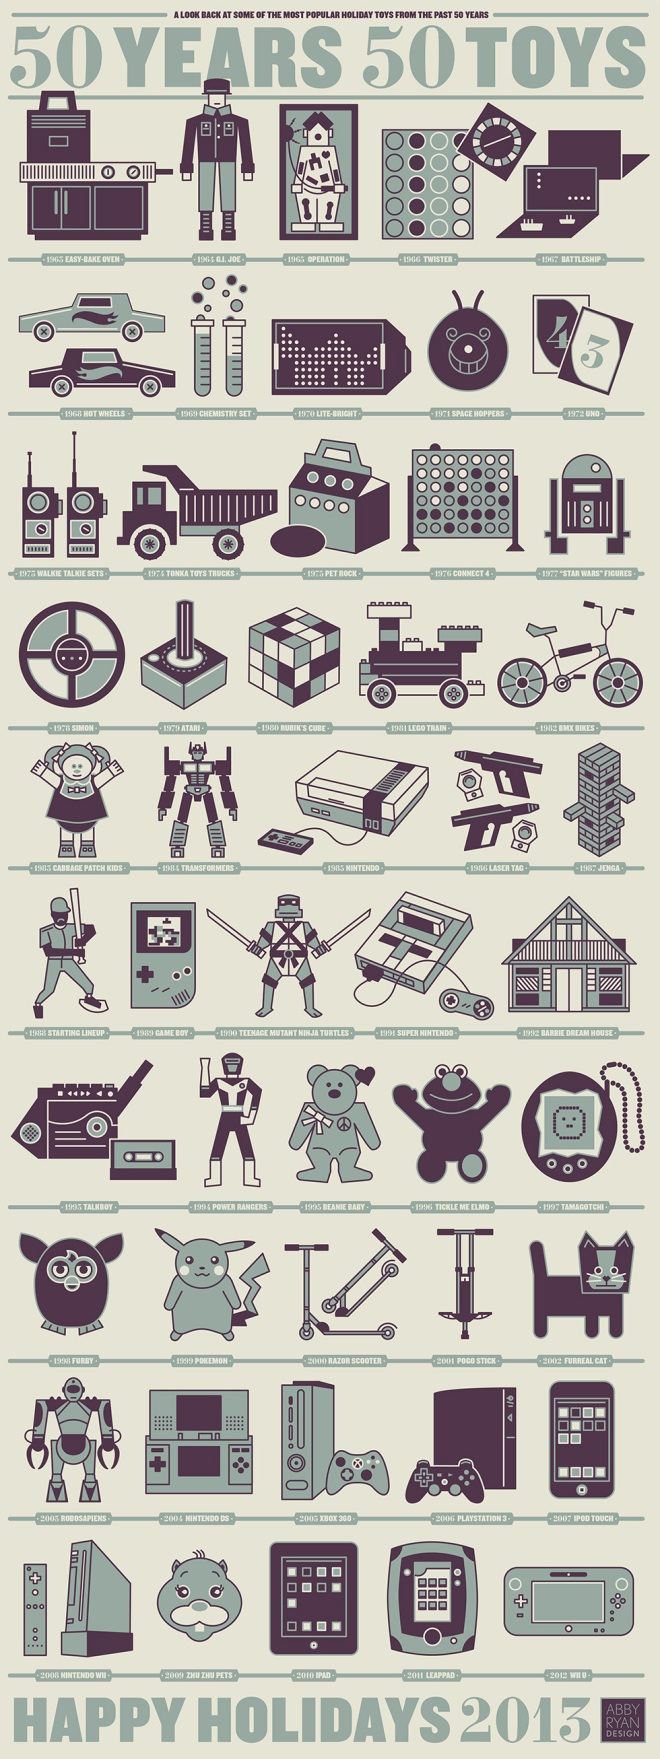 50 Years 50 Toys through history Infographic